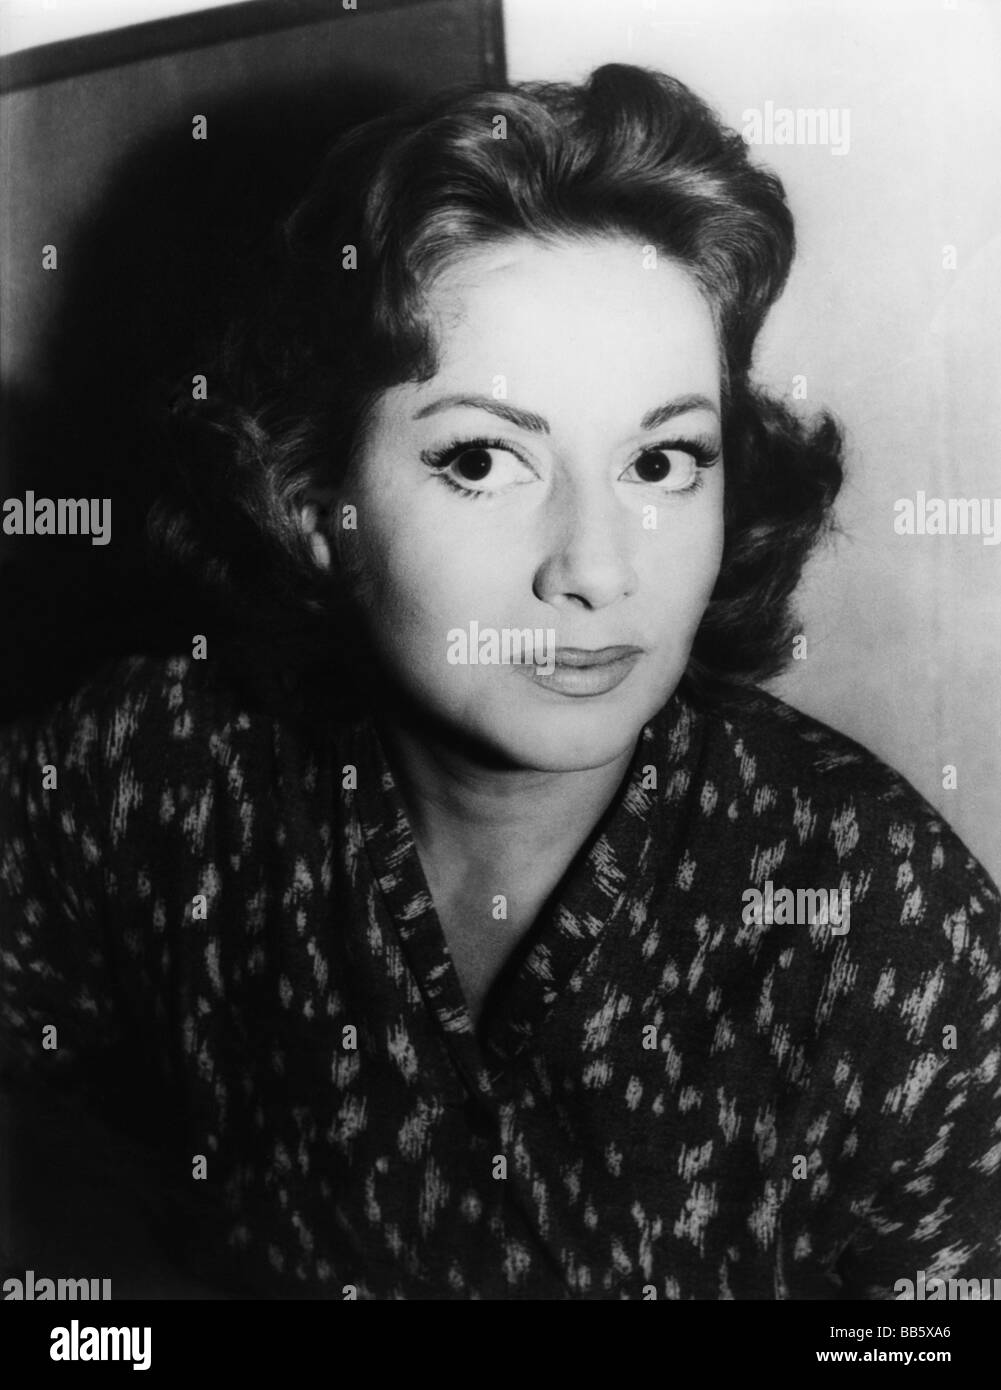 Merlini, Marisa, 8.8.1923 - 27.7.2008, Italian actress, portrait, later 1950s, Additional-Rights-Clearances-NA - Stock Image